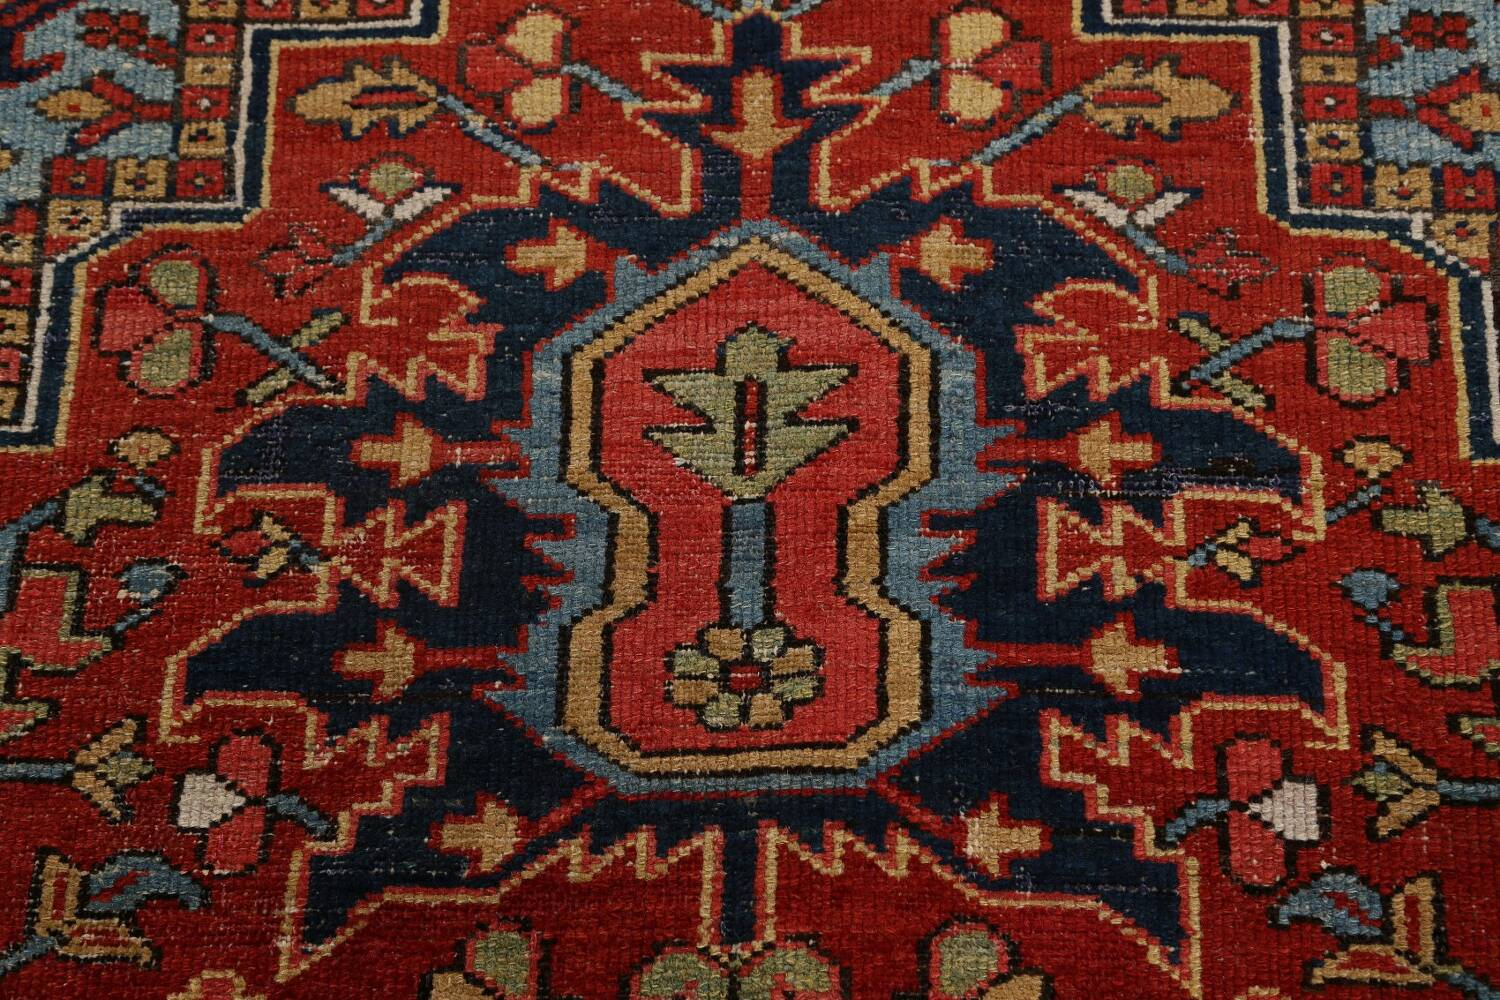 Pre-1900 Antique Vegetable Dye Heriz Serapi Persian Rug 12x14 image 11